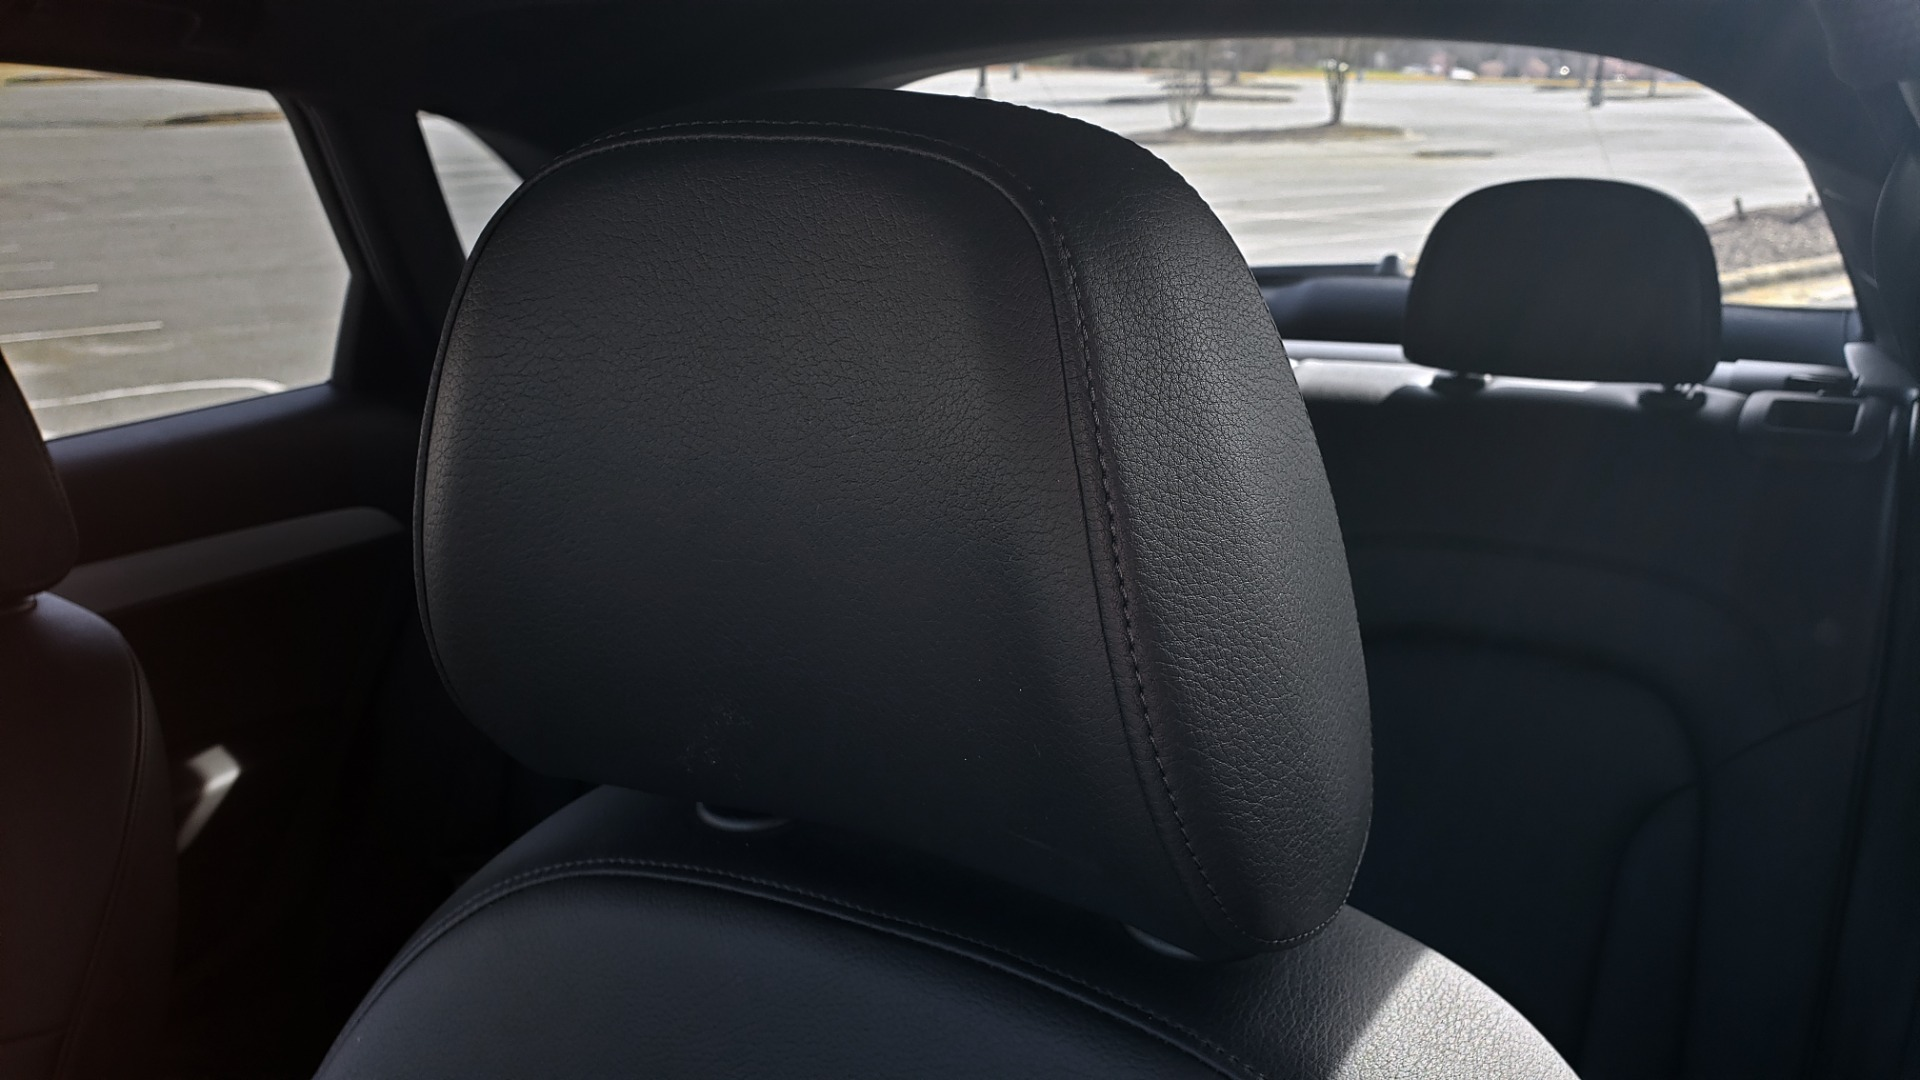 Used 2018 Audi Q3 SPORT PREMIUM PLUS / TECHNOLOGY / SUNROOF / BOSE / REARVIEW for sale Sold at Formula Imports in Charlotte NC 28227 55